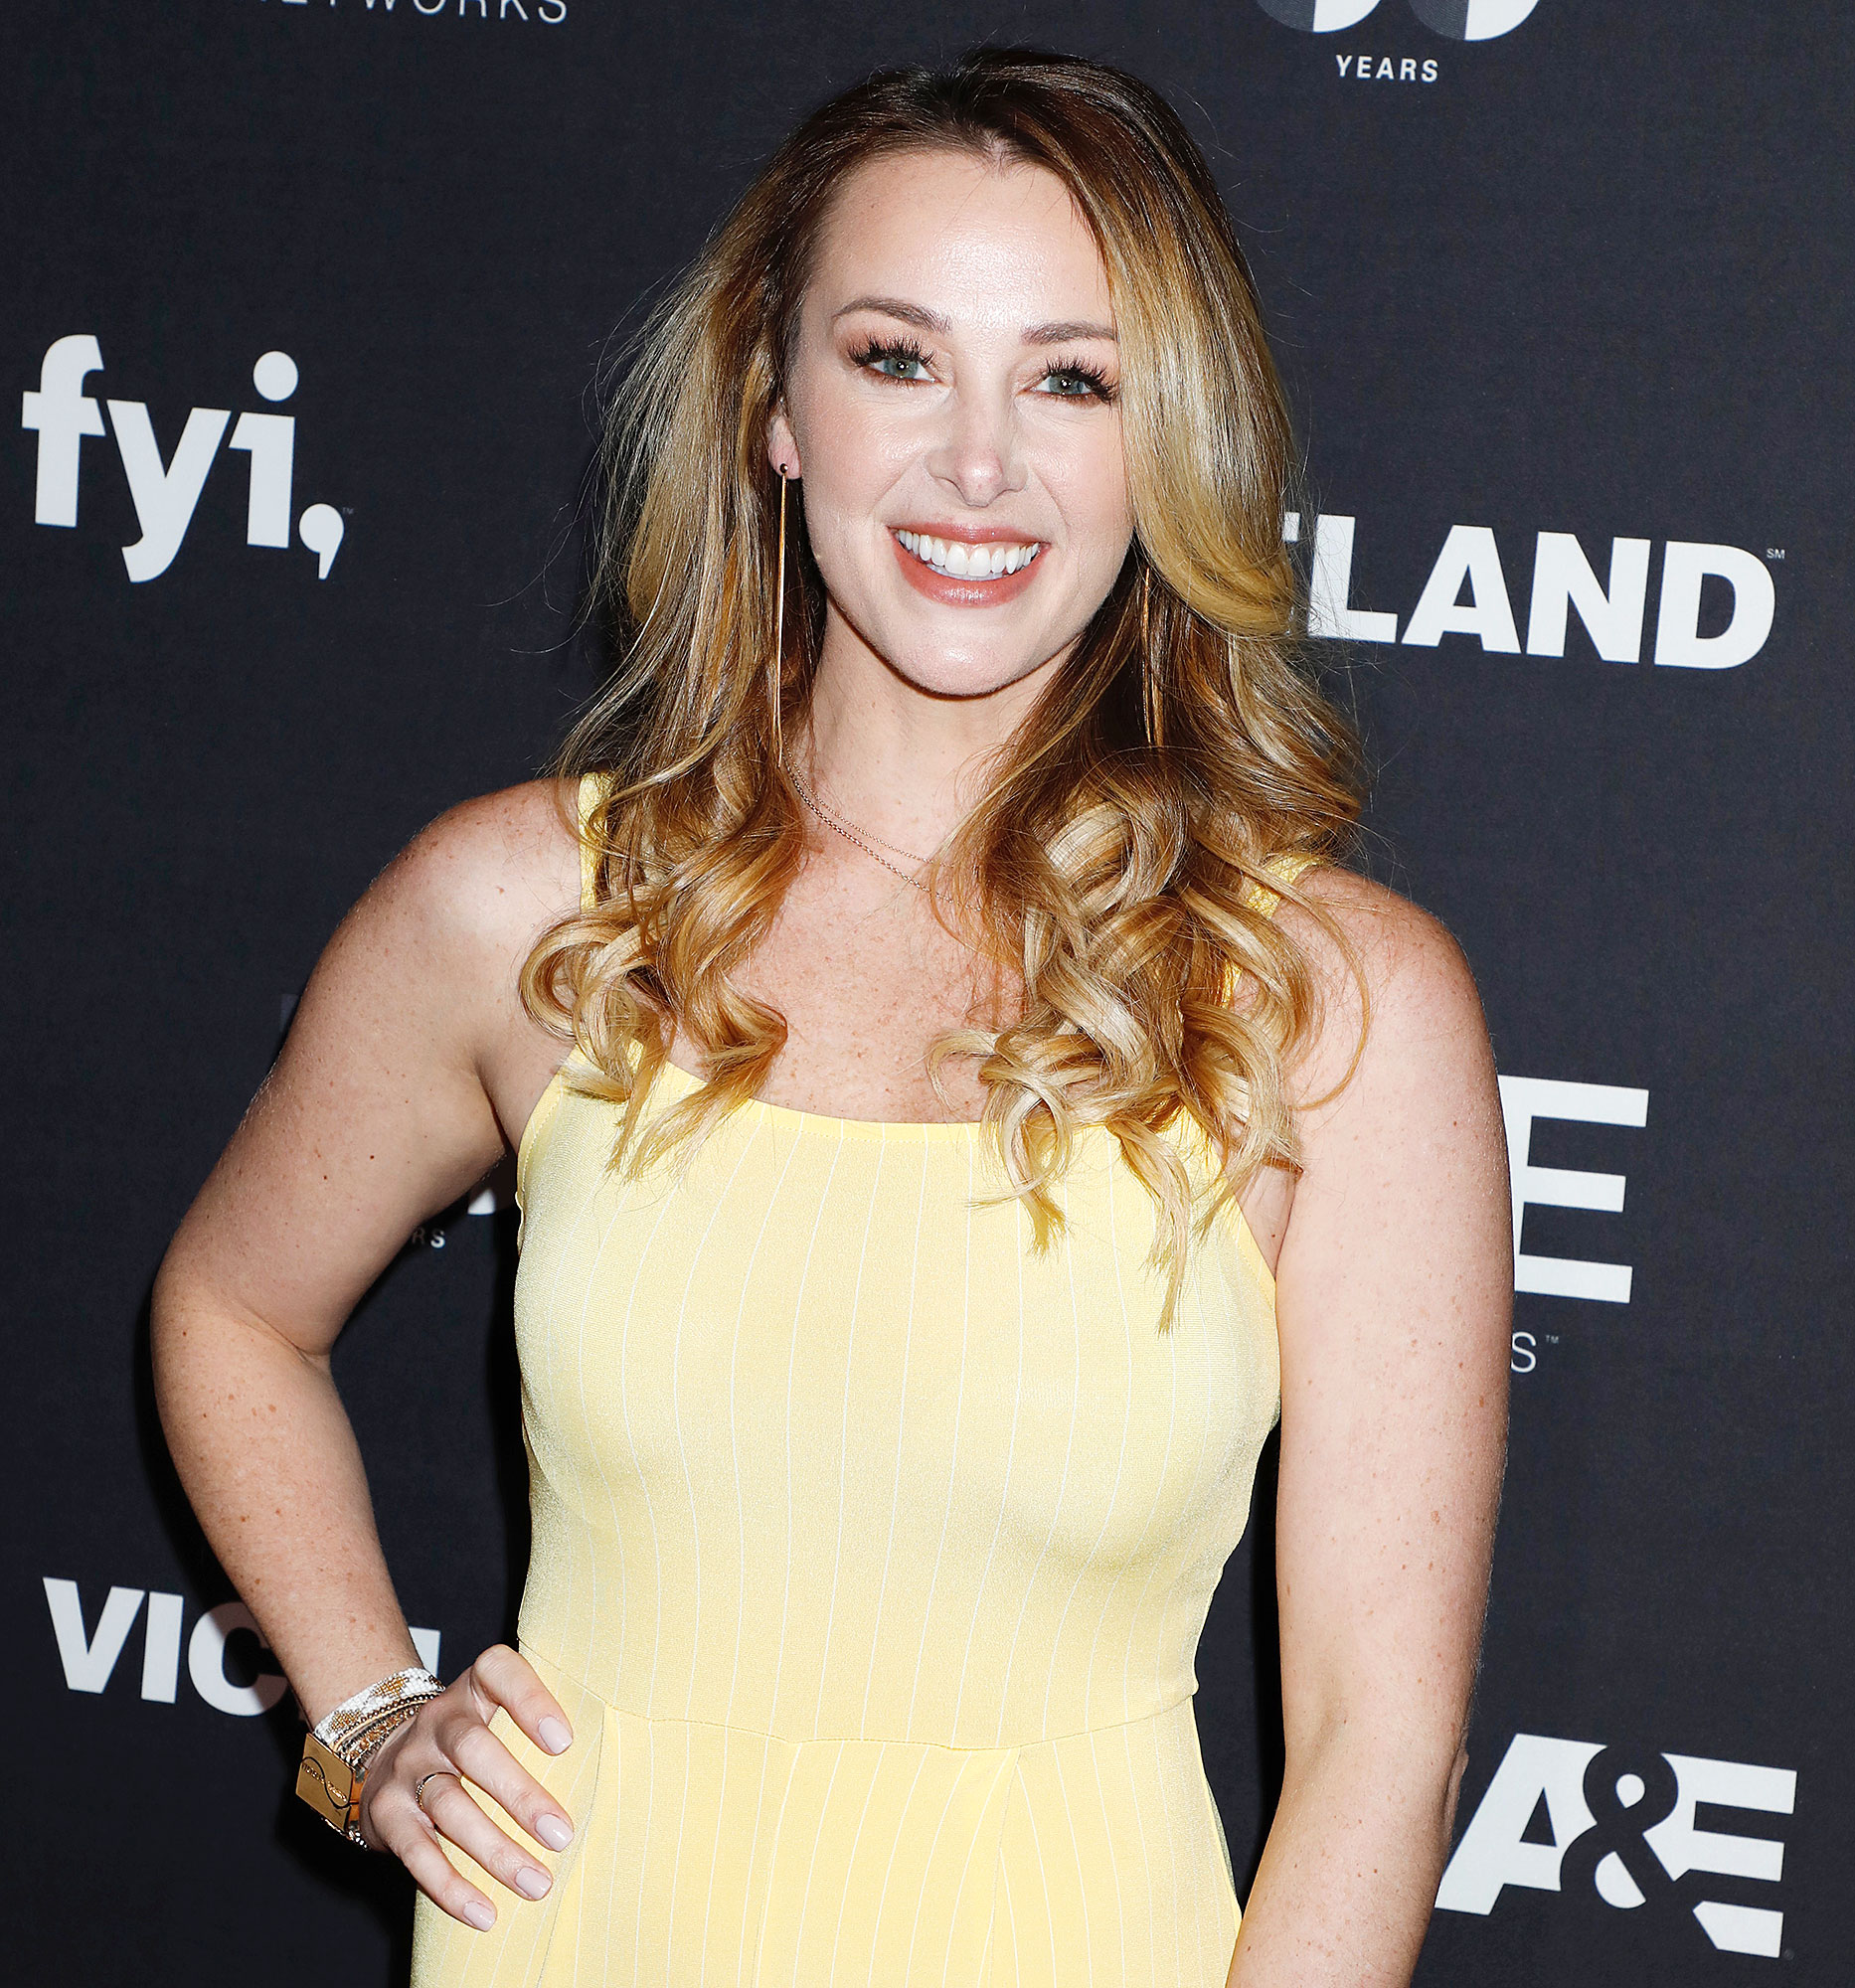 Jamie Otis Buys Daughter Henley 1st Black Baby Doll and Books and Says Change Starts at Home